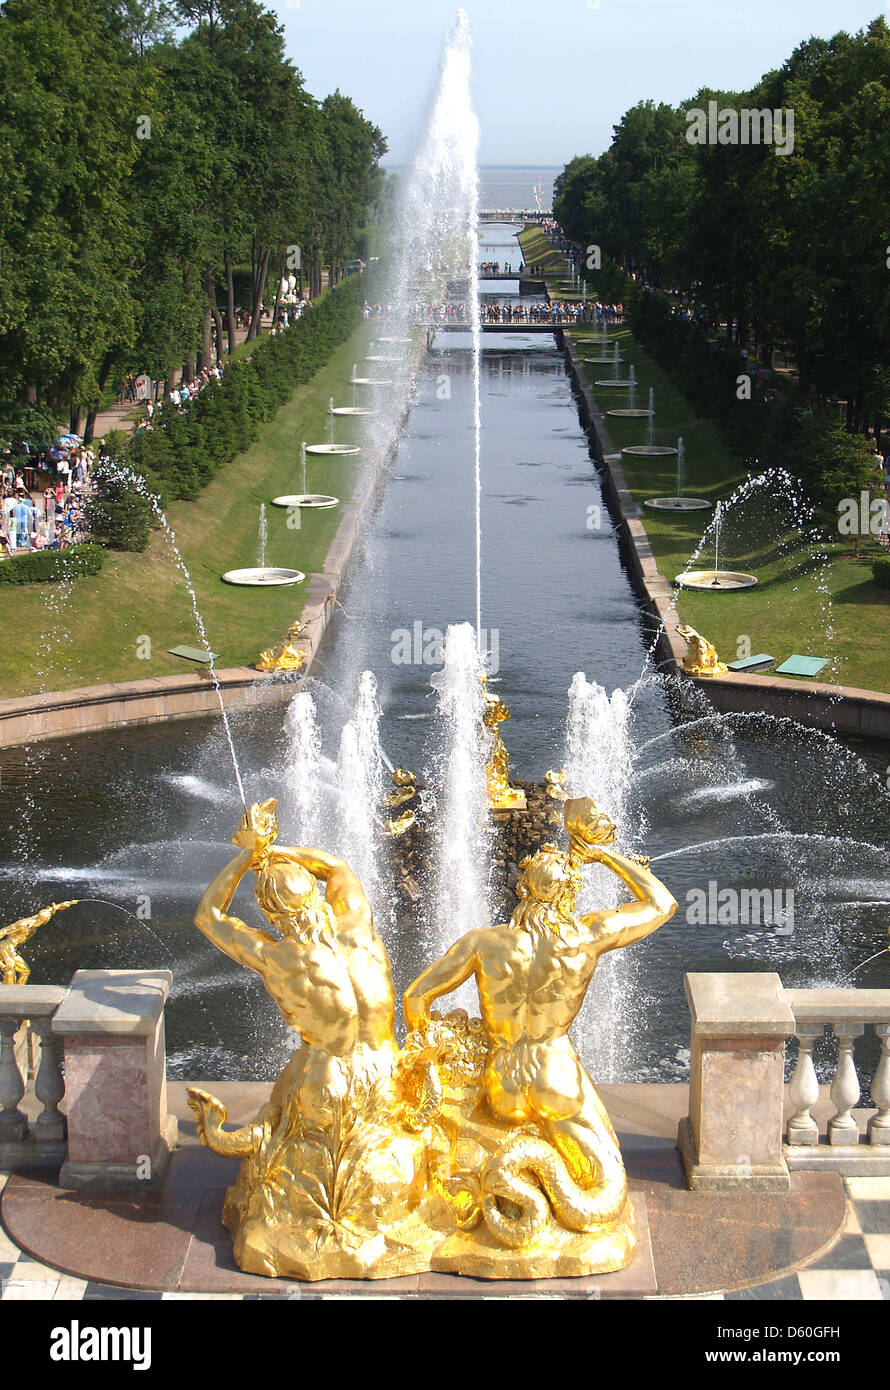 The Samson Fountain and Water Avenue at Peterhof Palace,St.Petersburg - Stock Image